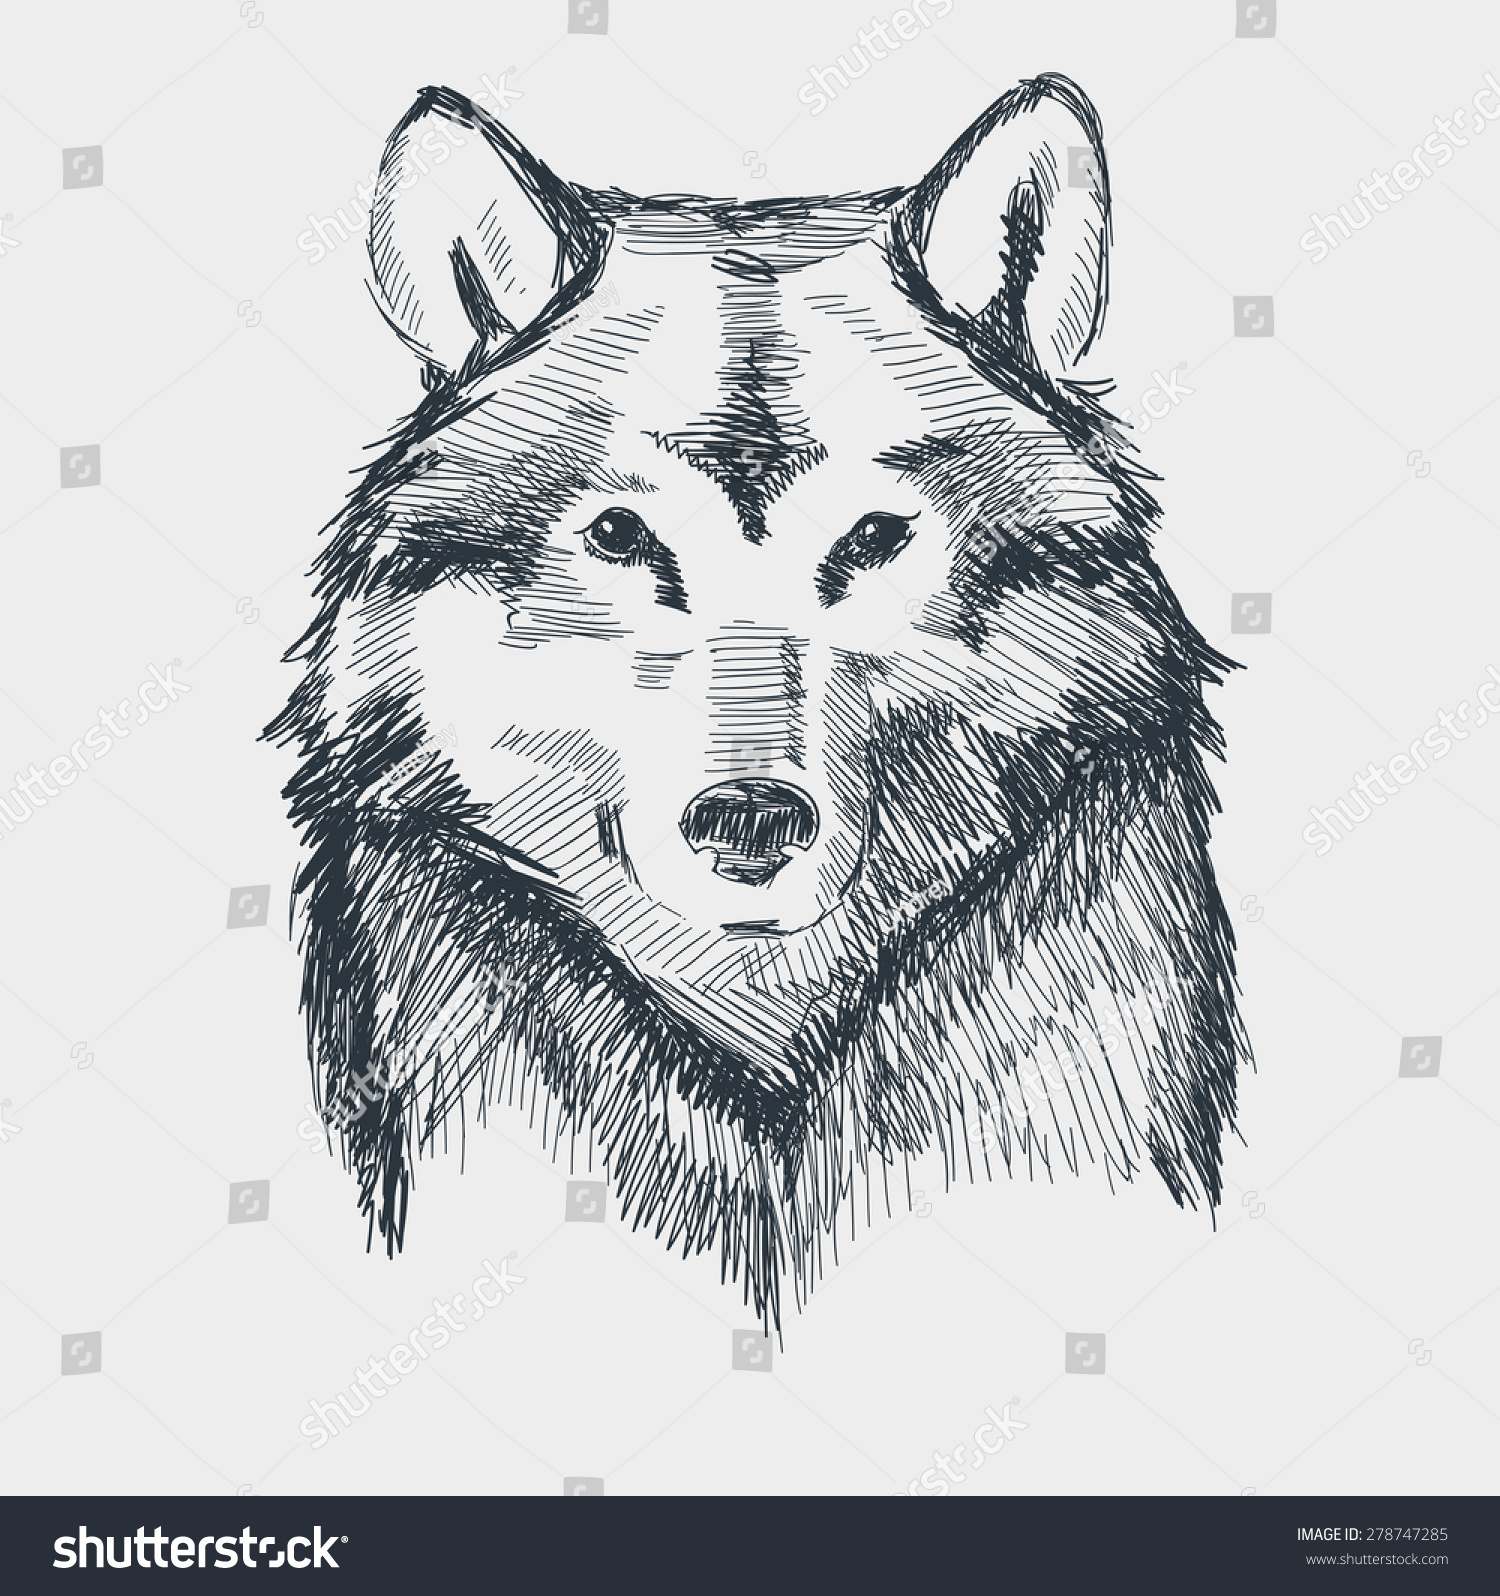 Wolf Head Grunge Hand Drawn Sketch Vector Illustration Draw